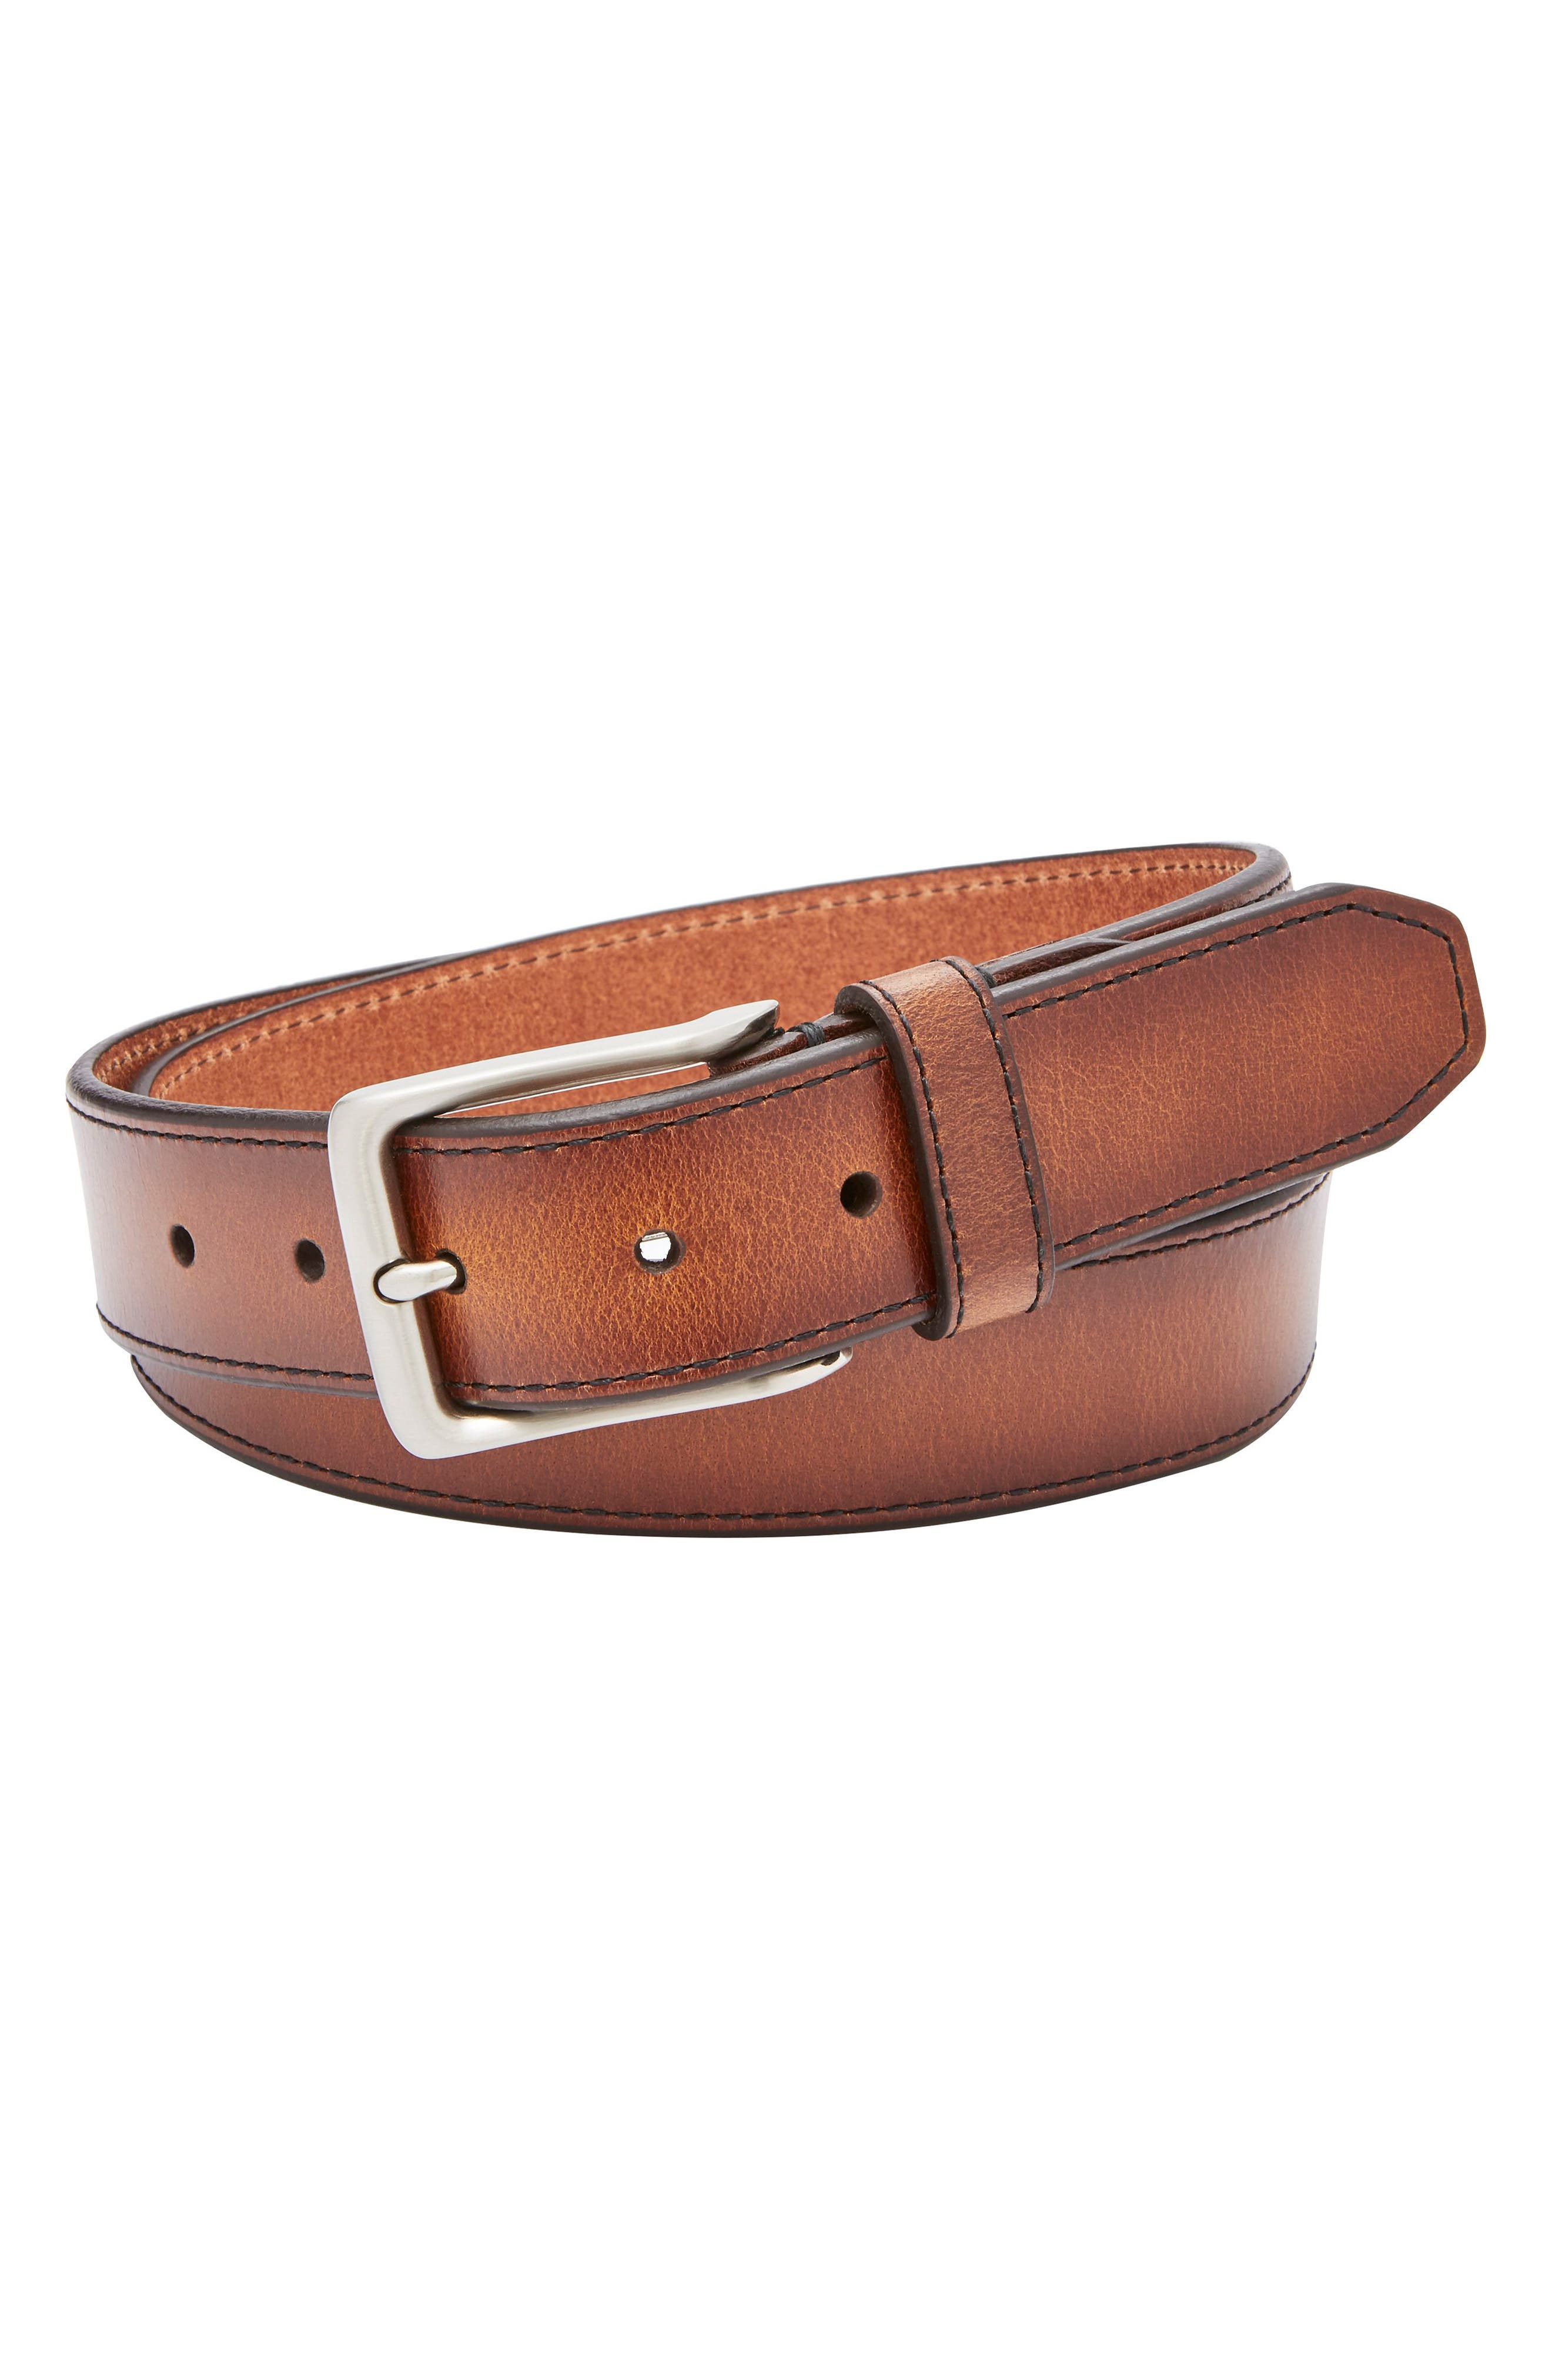 Main Image - Fossil Griffin Leather Belt